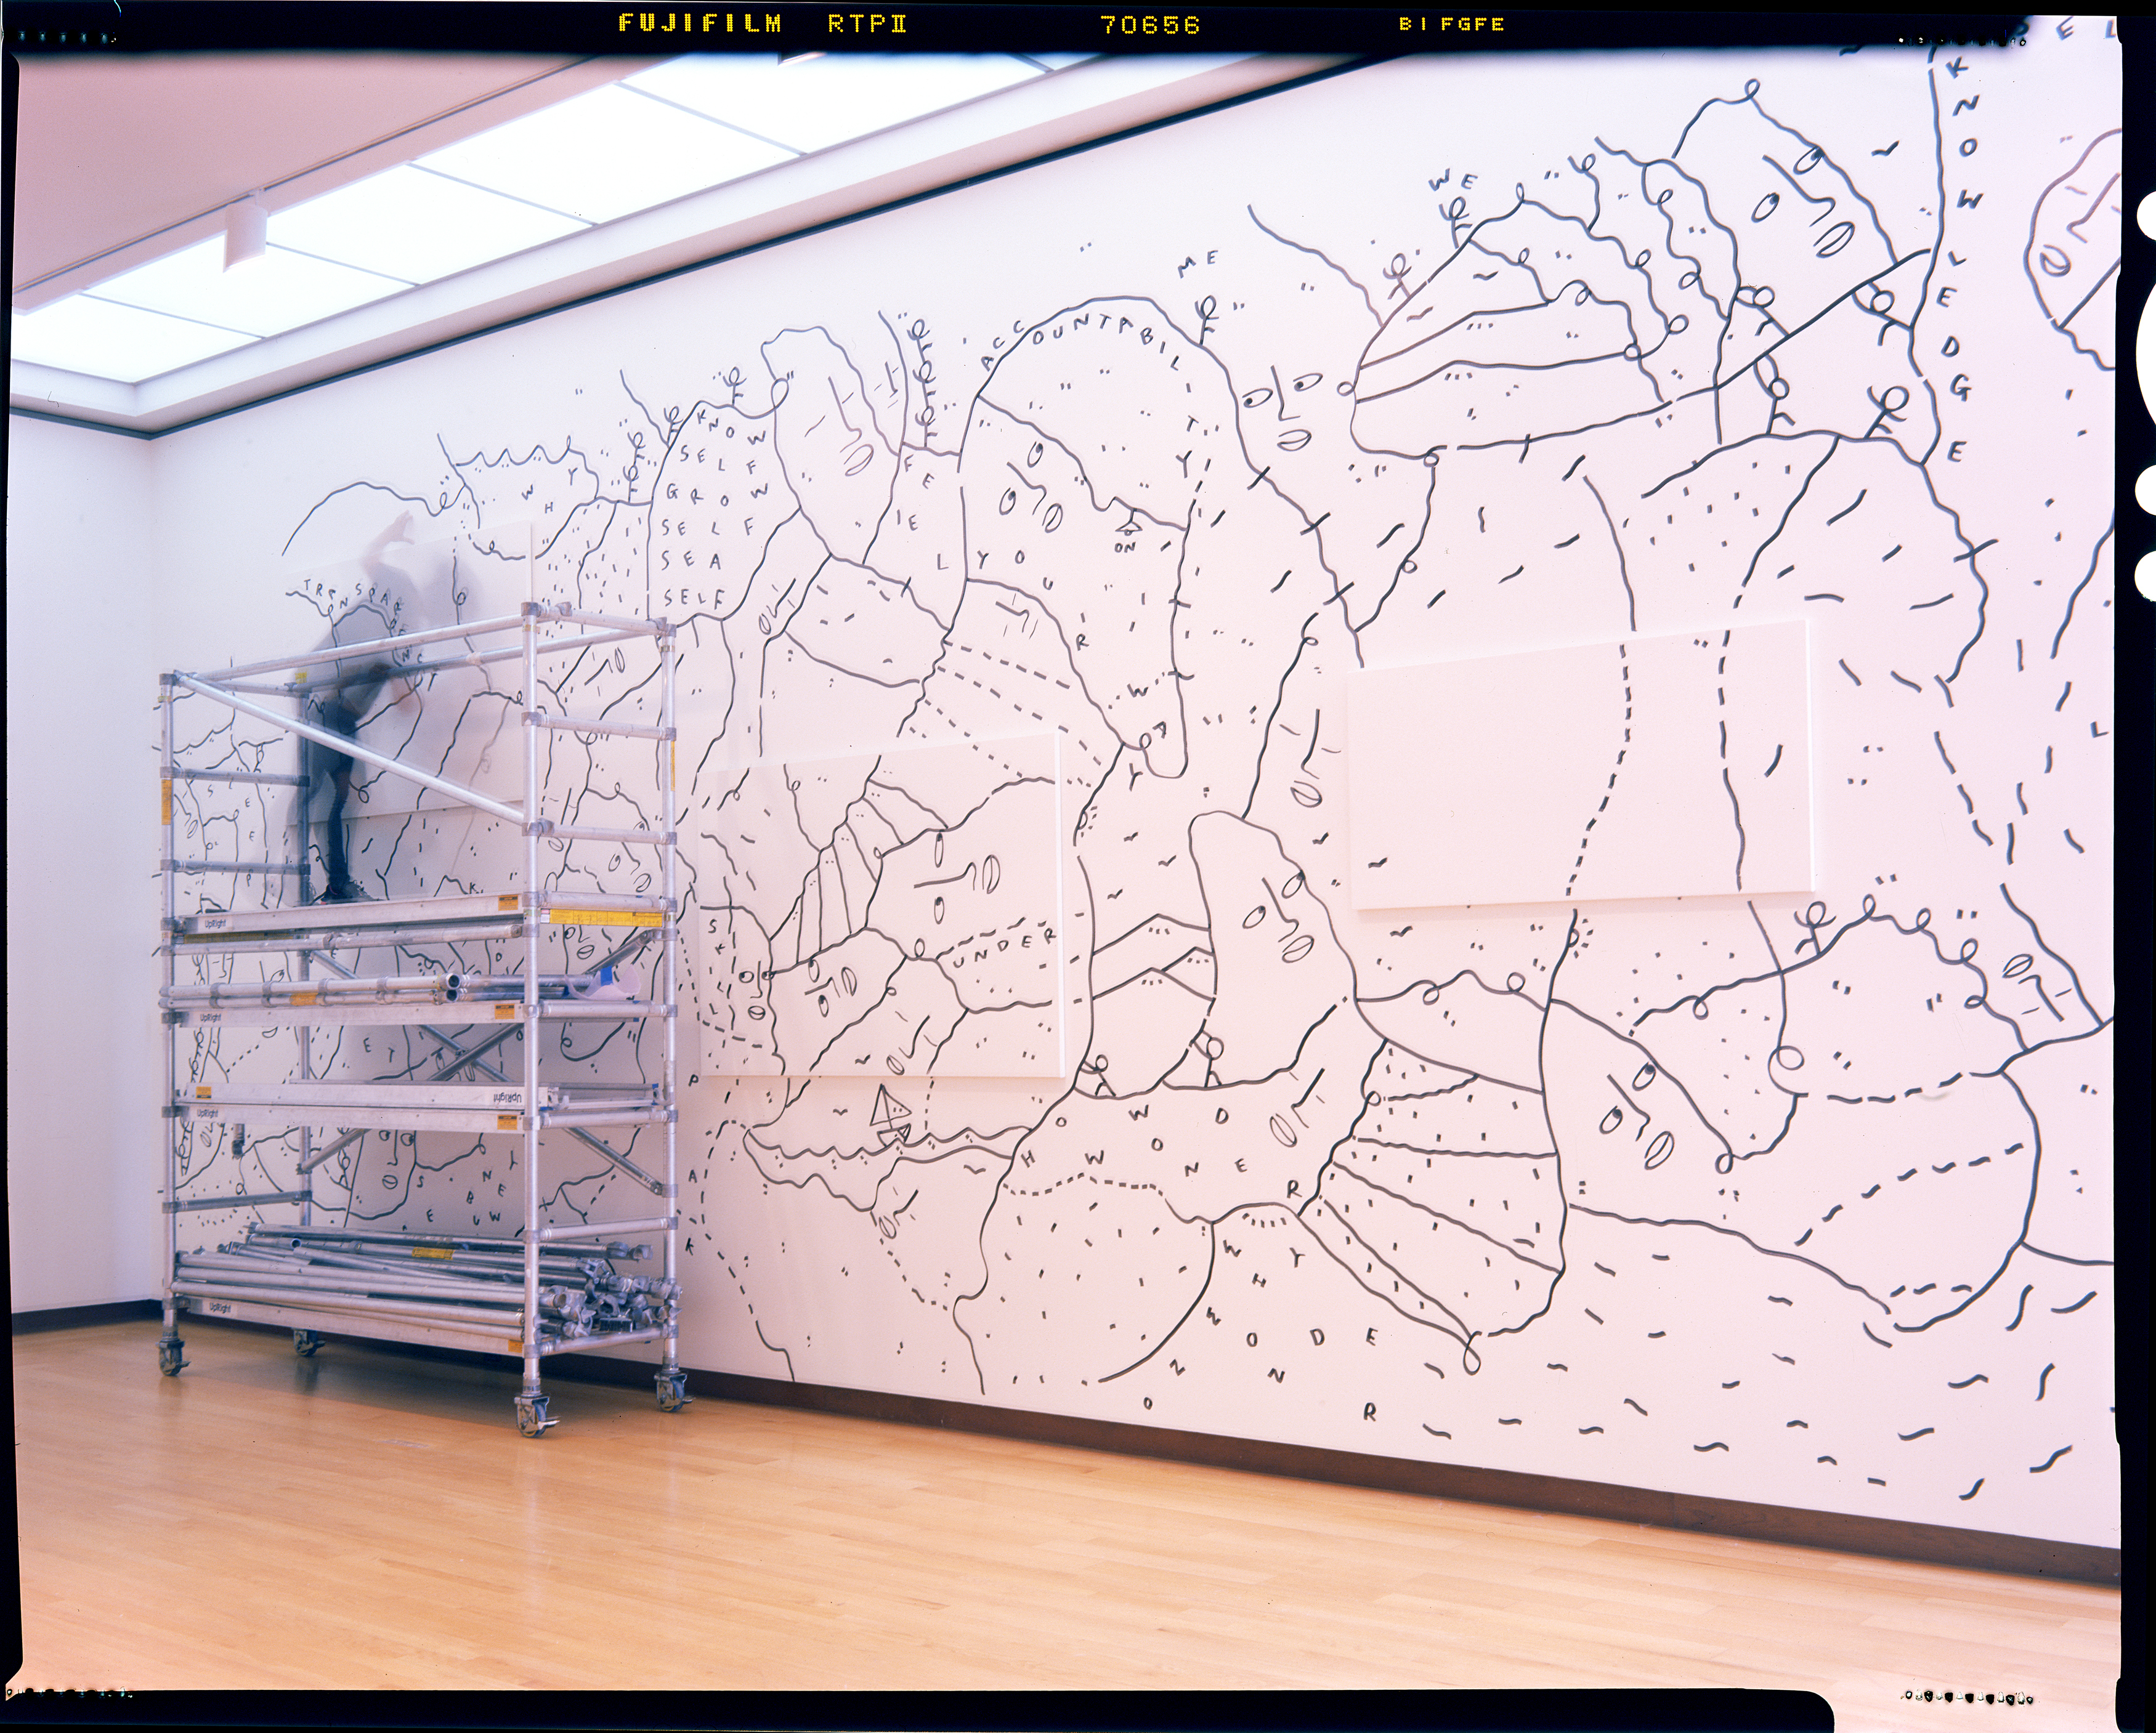 """Shantell Martin, Digital Image from 4"""" x 5"""" film negative, Photo by Theo Coulombe"""